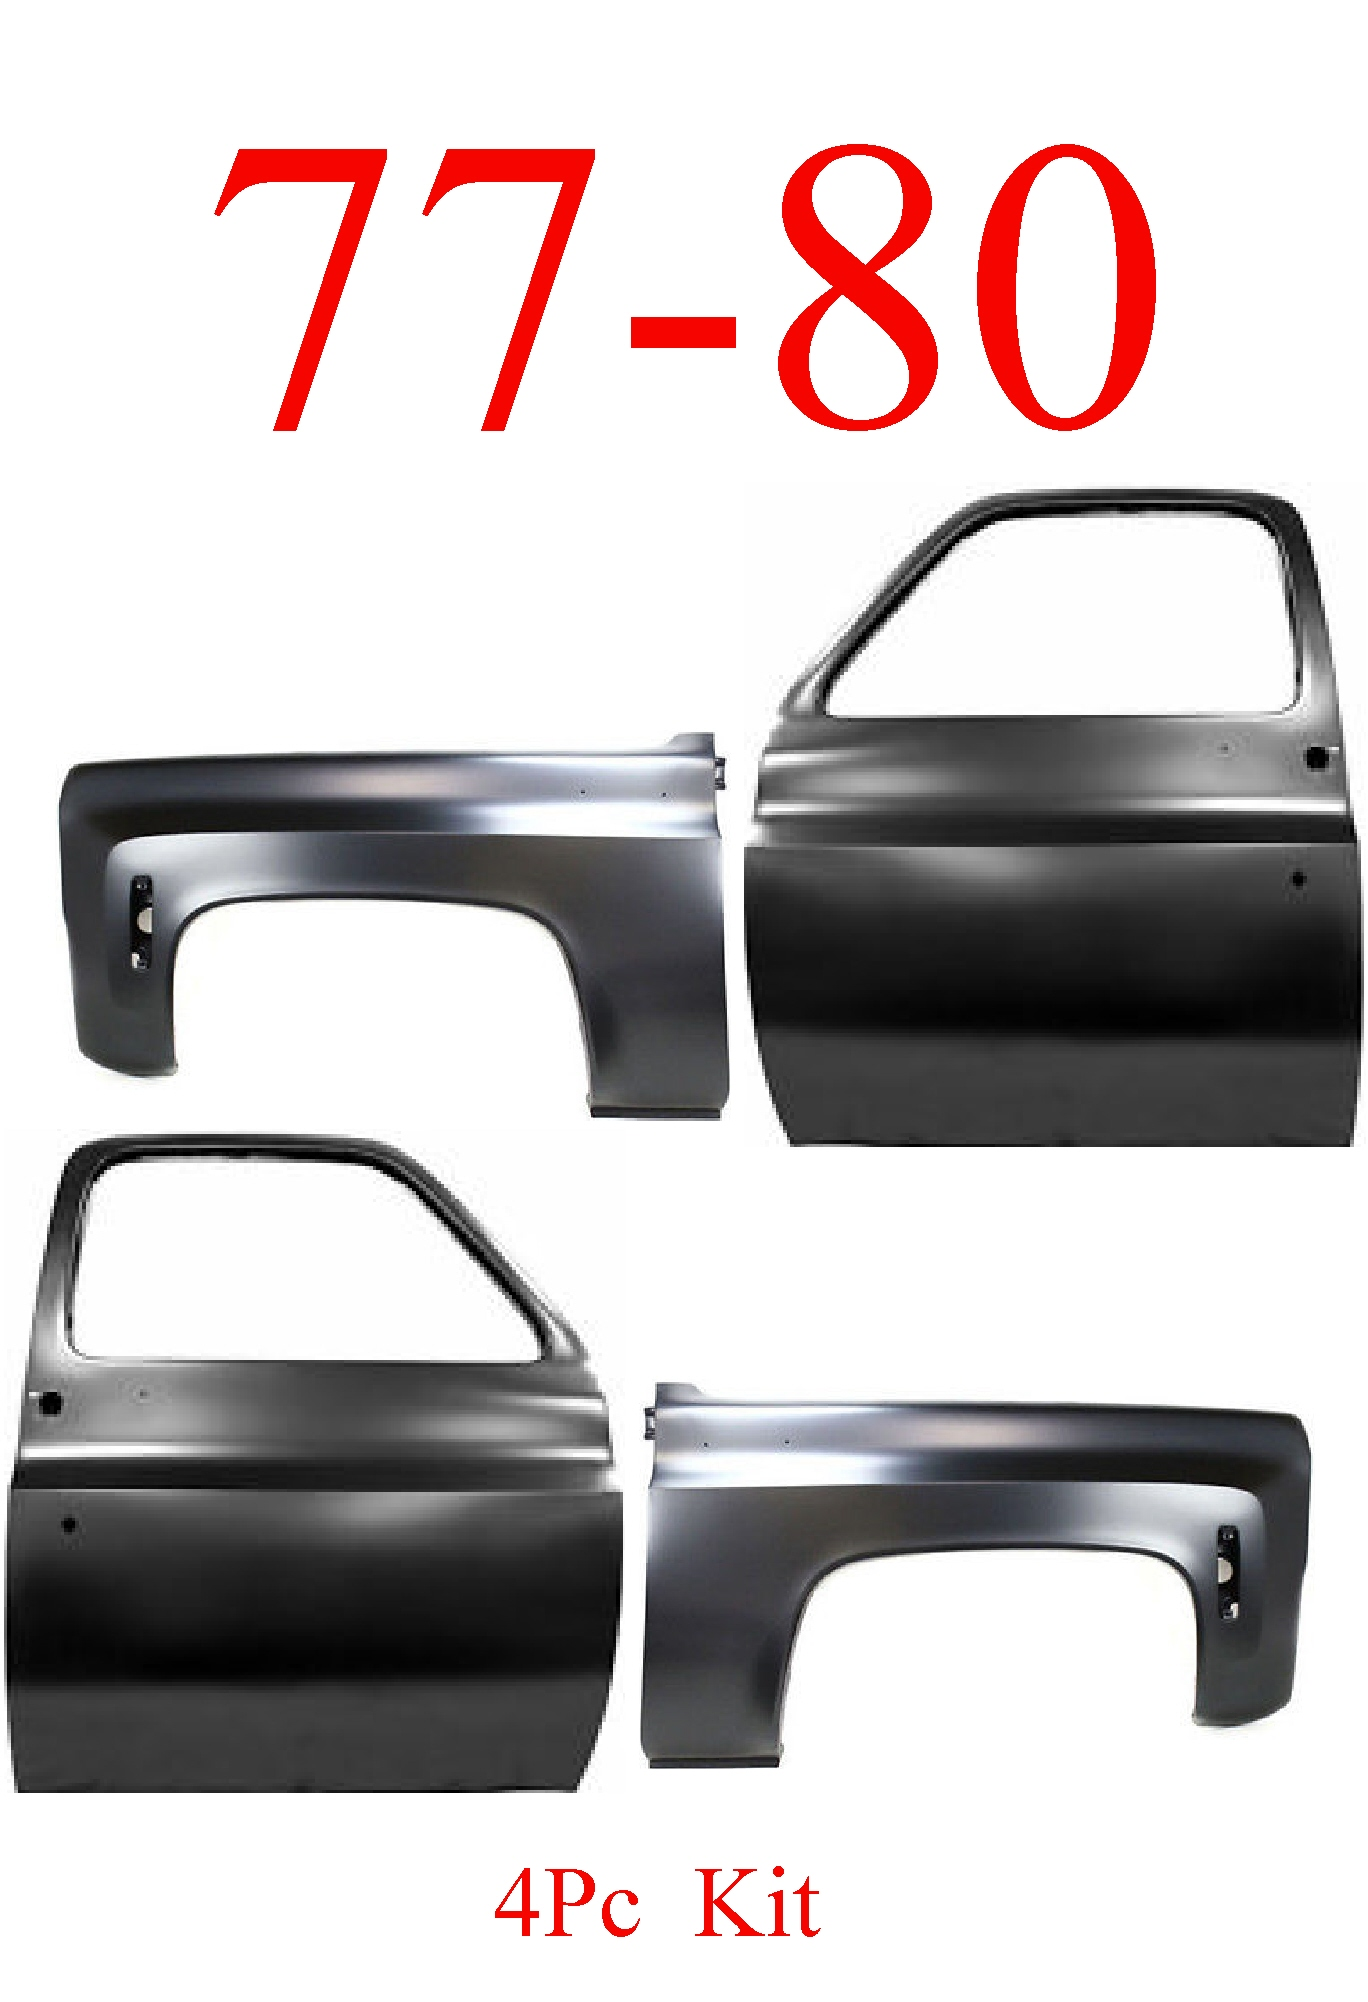 77-80 Chevy GMC Doors & Fenders 4Pc Kit